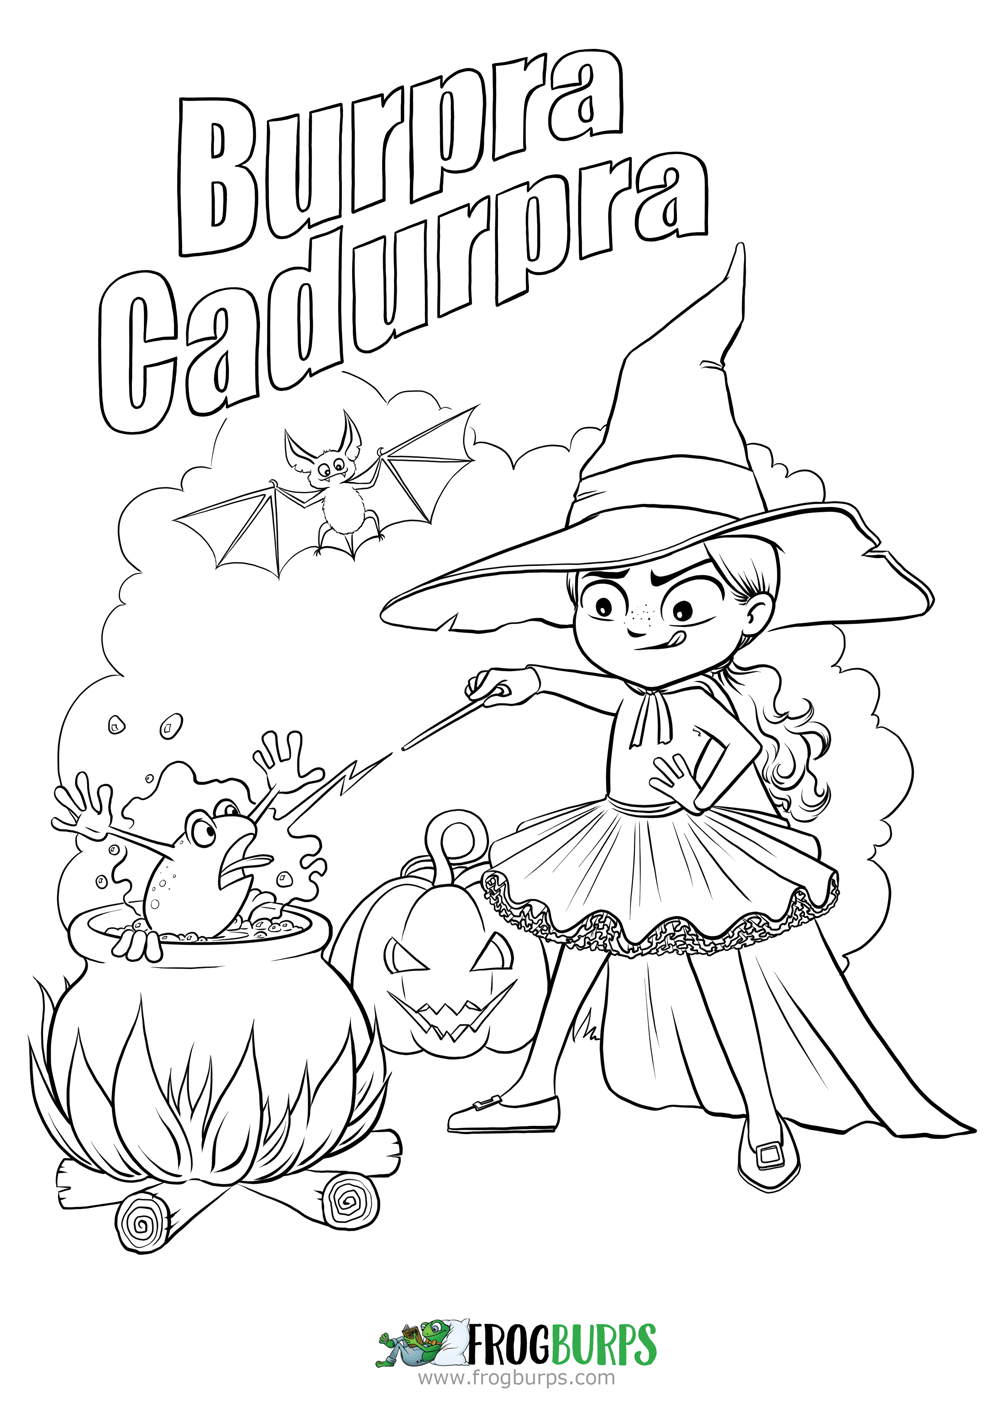 Burpra Cadurpra | Coloring Page #freebie #free #coloringpages #witch ...